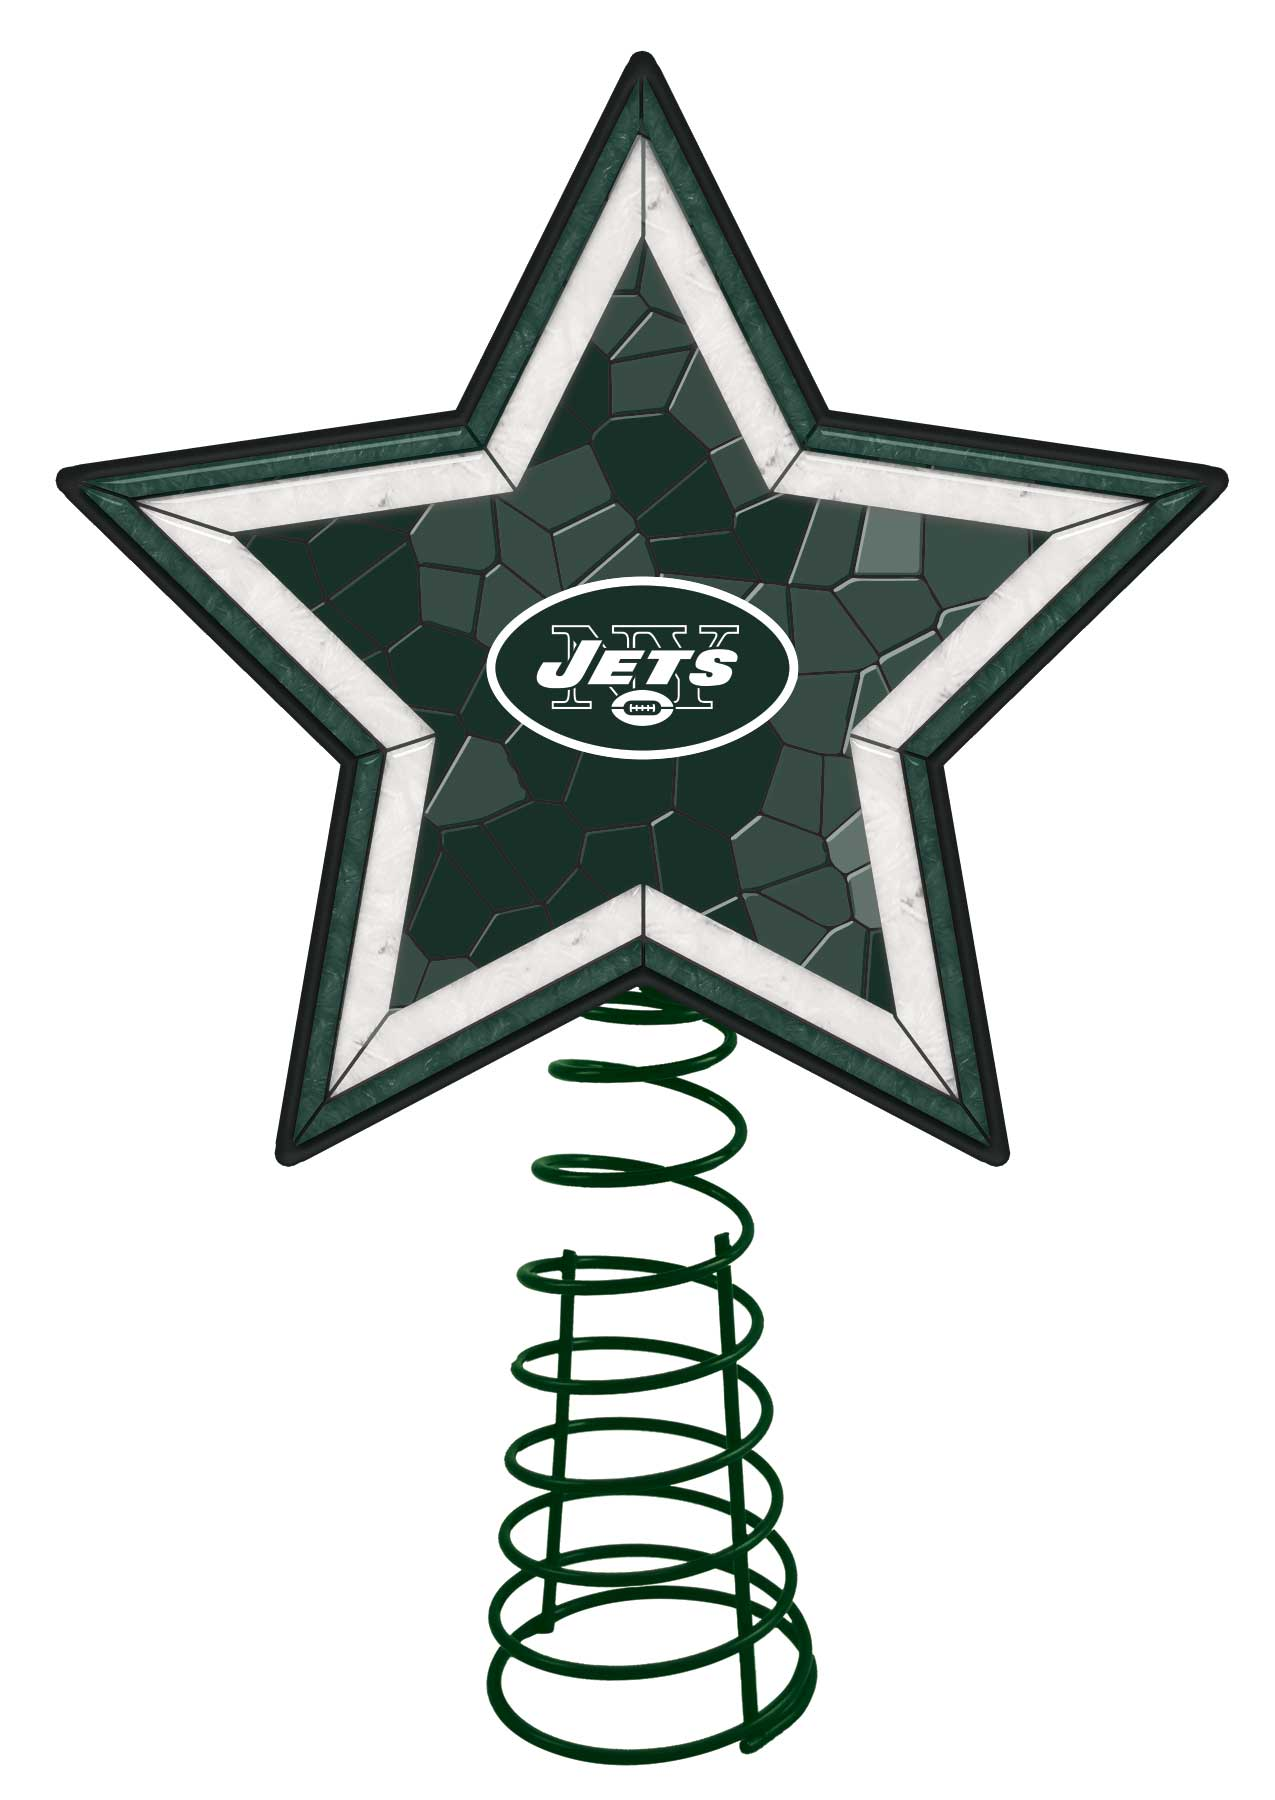 New York Jets Full Size Doormat Cracker Barrel Old Country Store